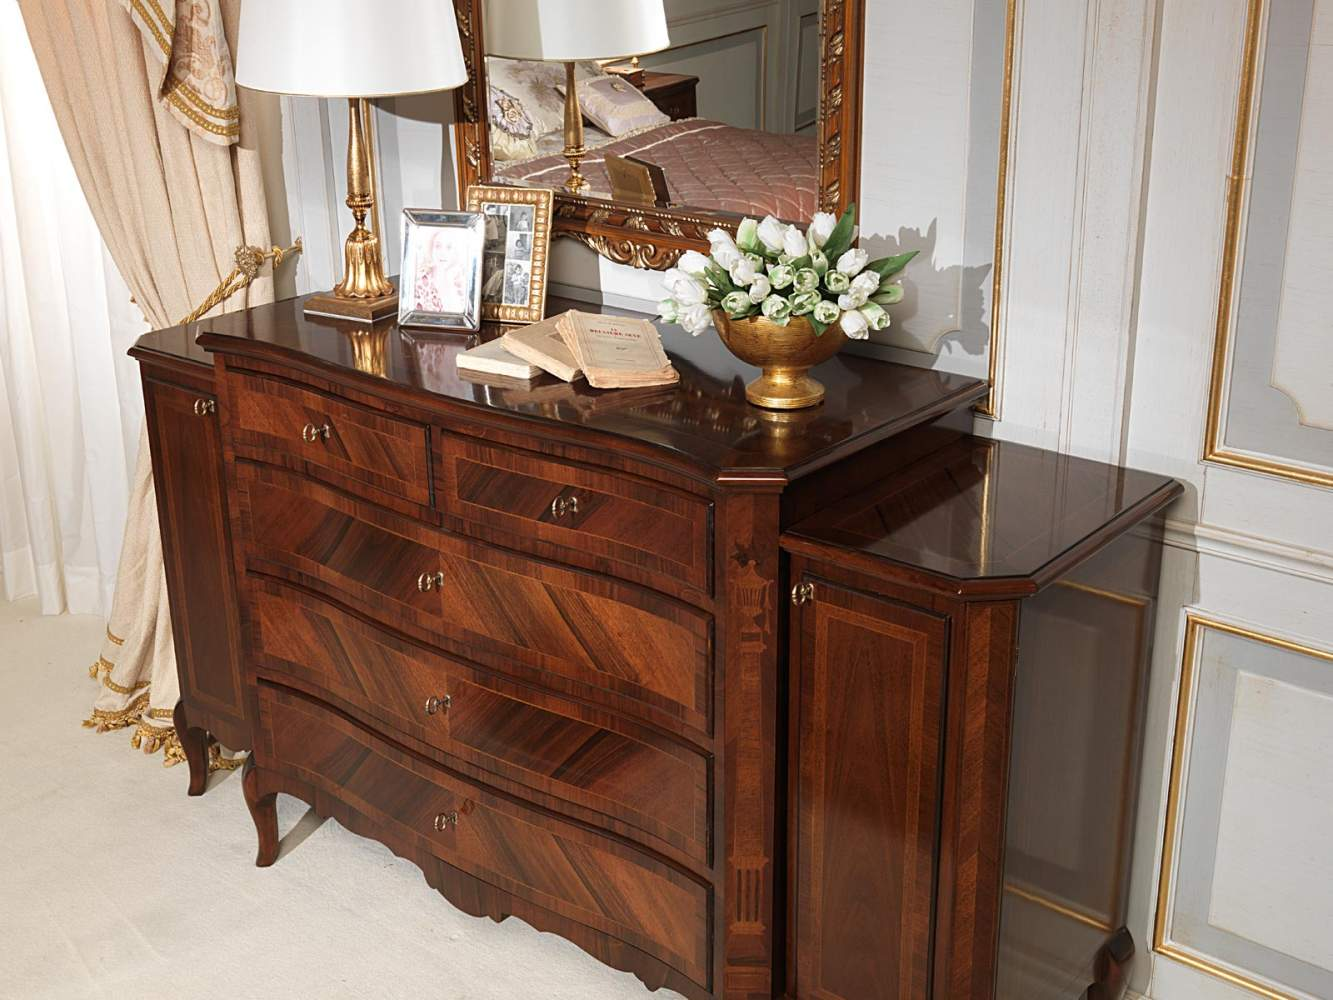 Classic 19th century french bedroom, chest of drawers with side doors